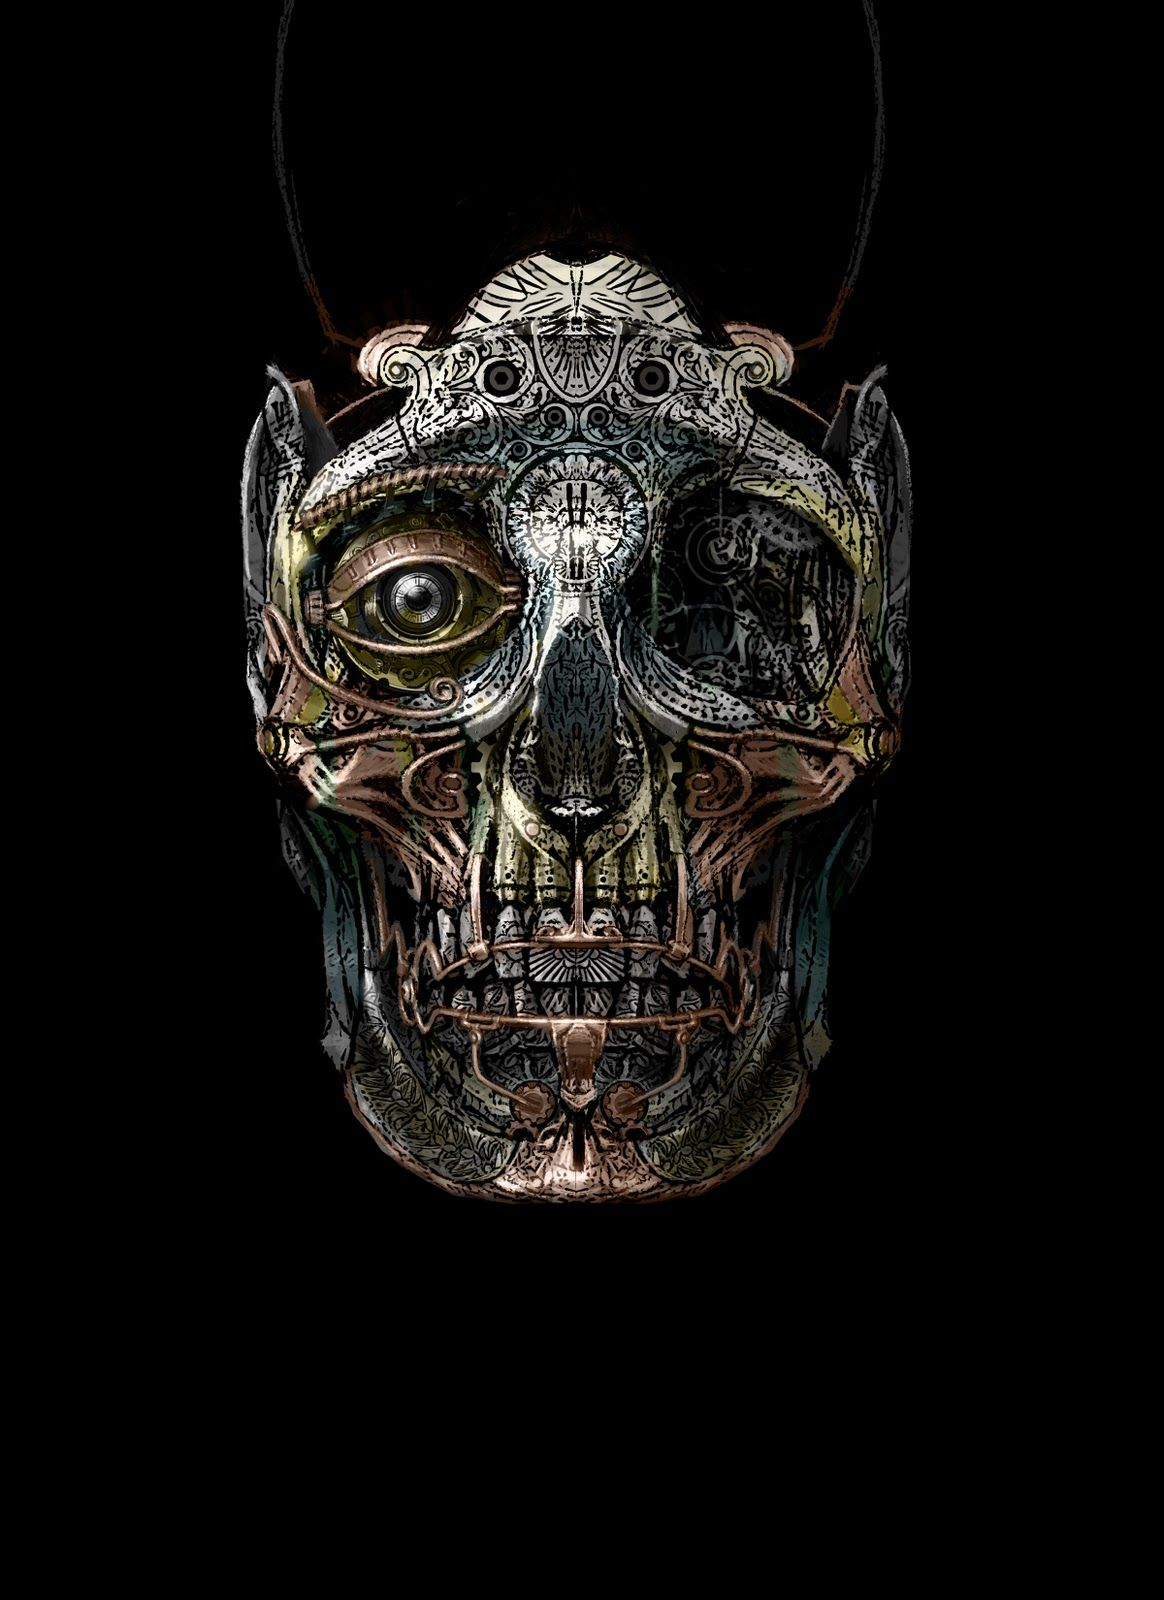 steampunk art images | Mowrer Art Steampunk Frankenstein and more: Steampunk Skull